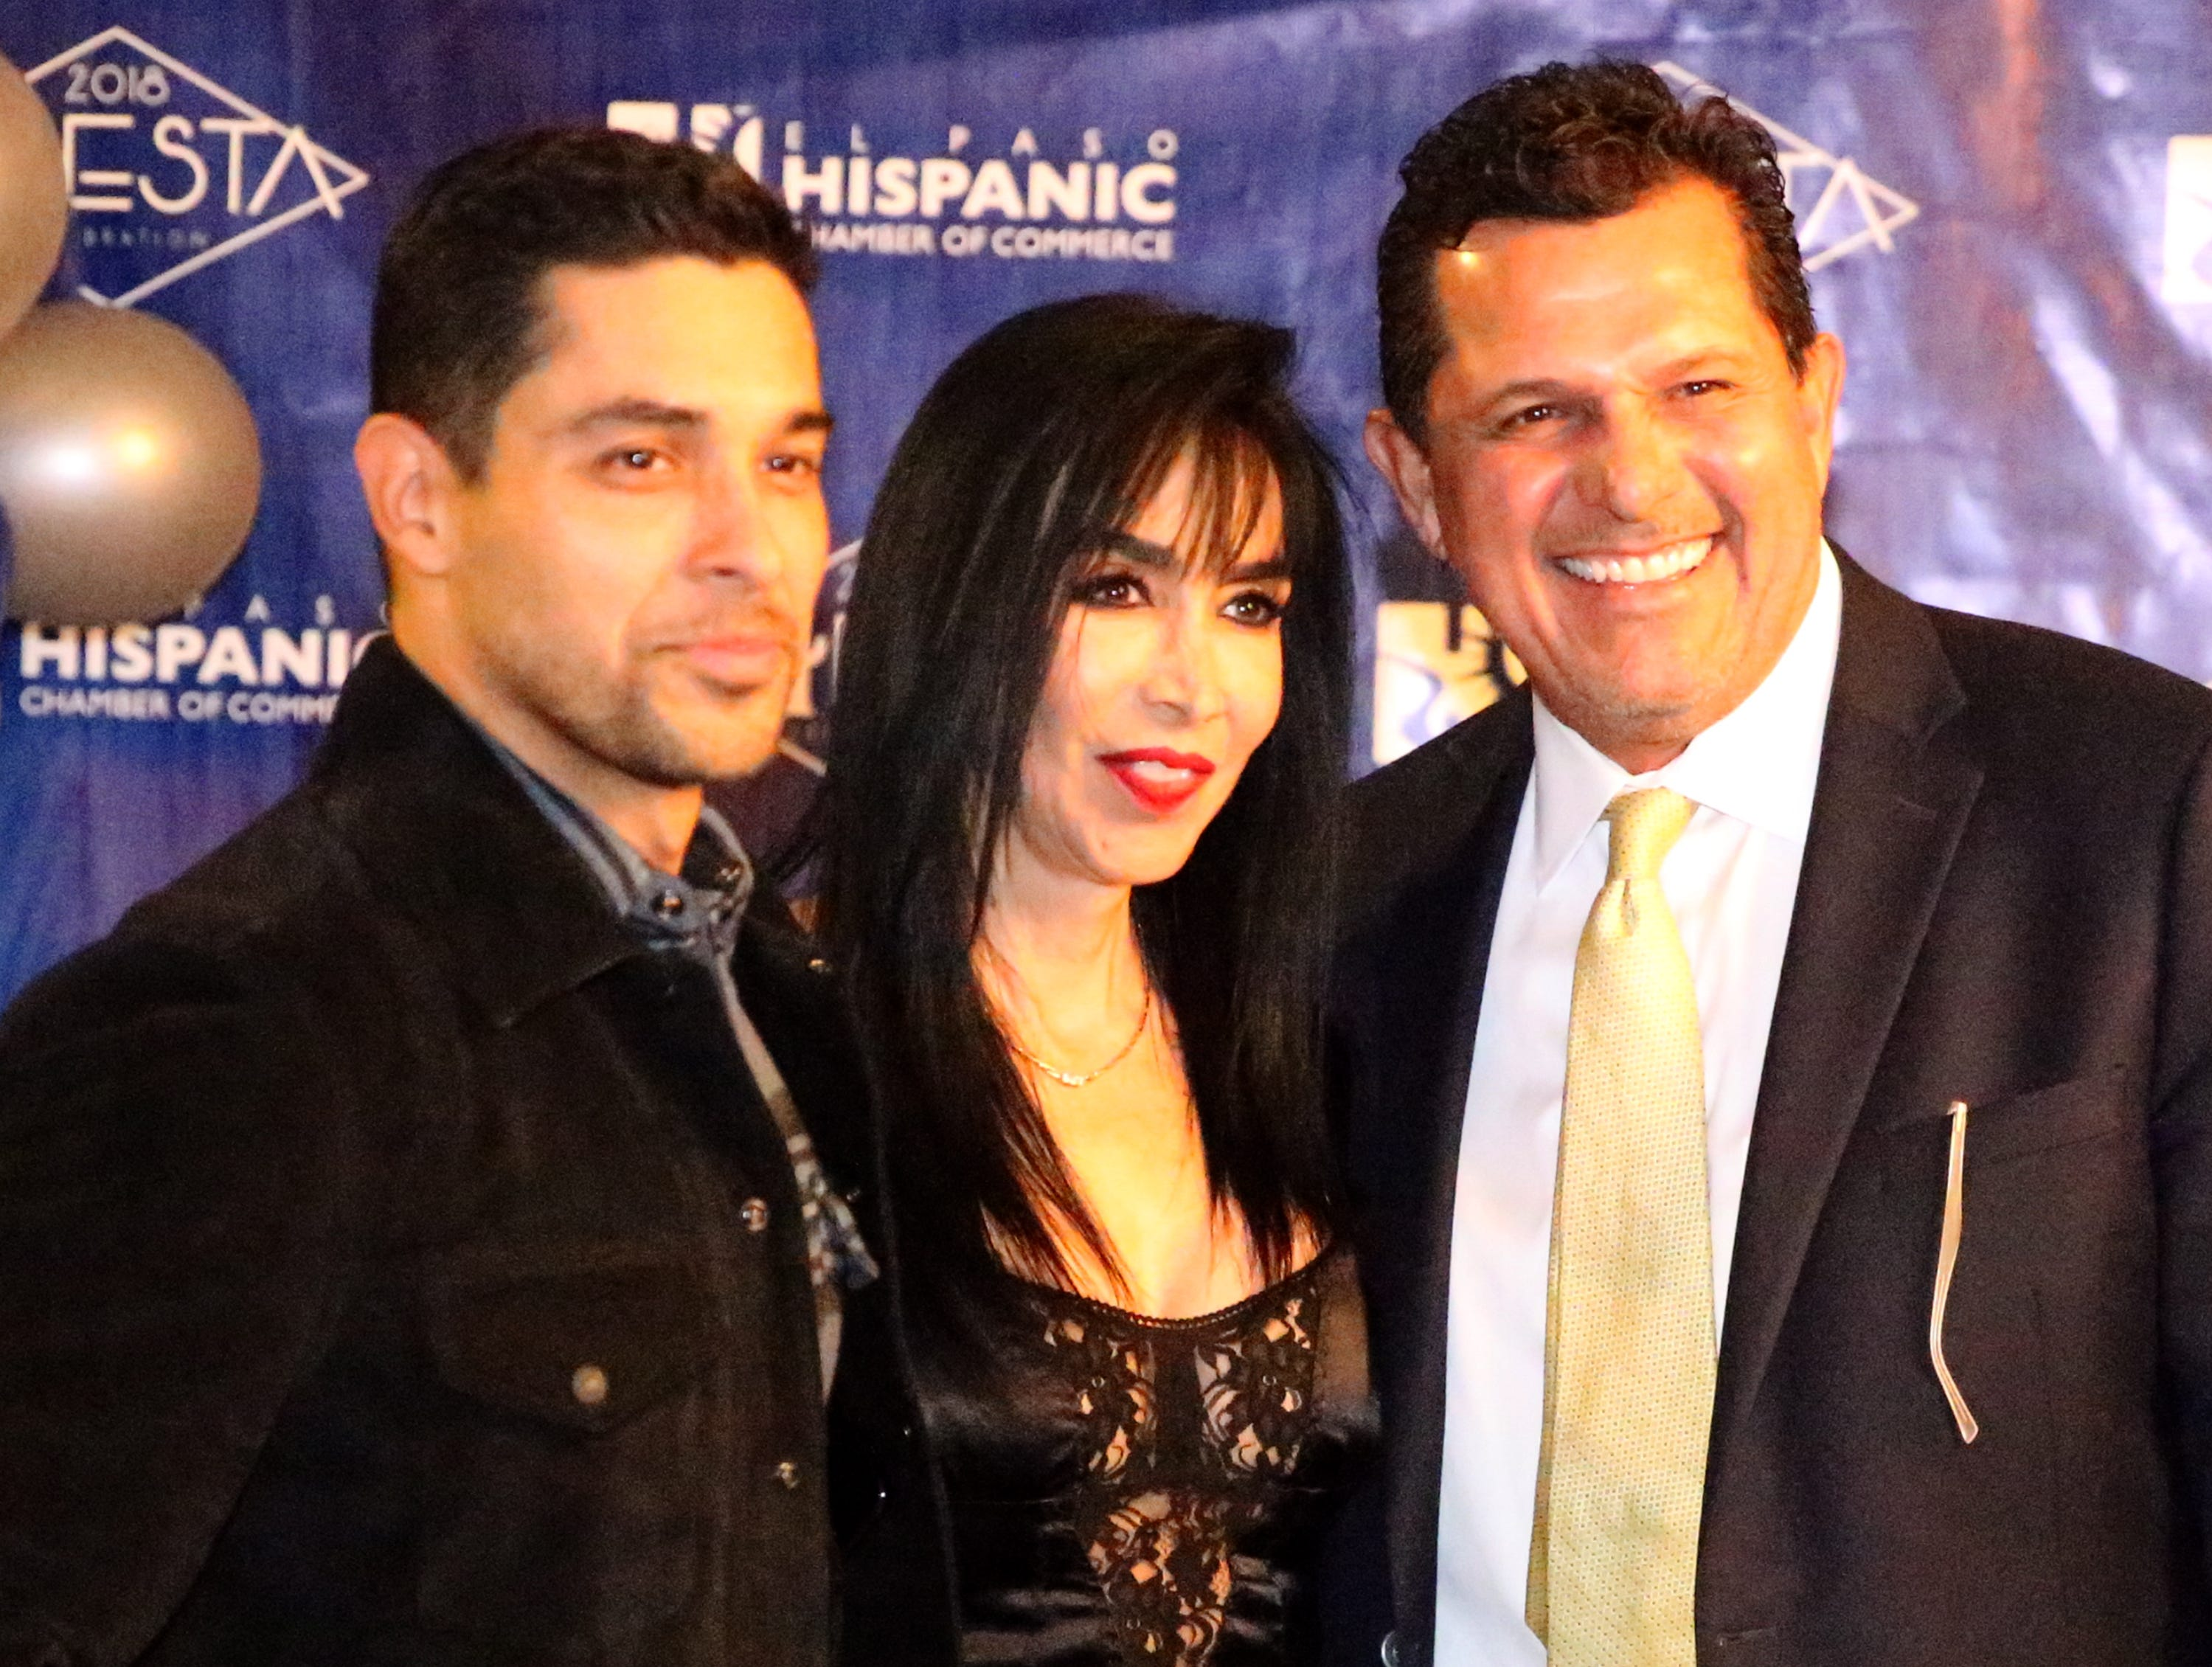 Actor/producer Wilmer Valderrama, left, poses for a picture with Martha Couttolenc, center, and David Candelaria Saturday at the El Paso HIspanic Chamber of Commerce 28th Fiesta Celebration Saturday.